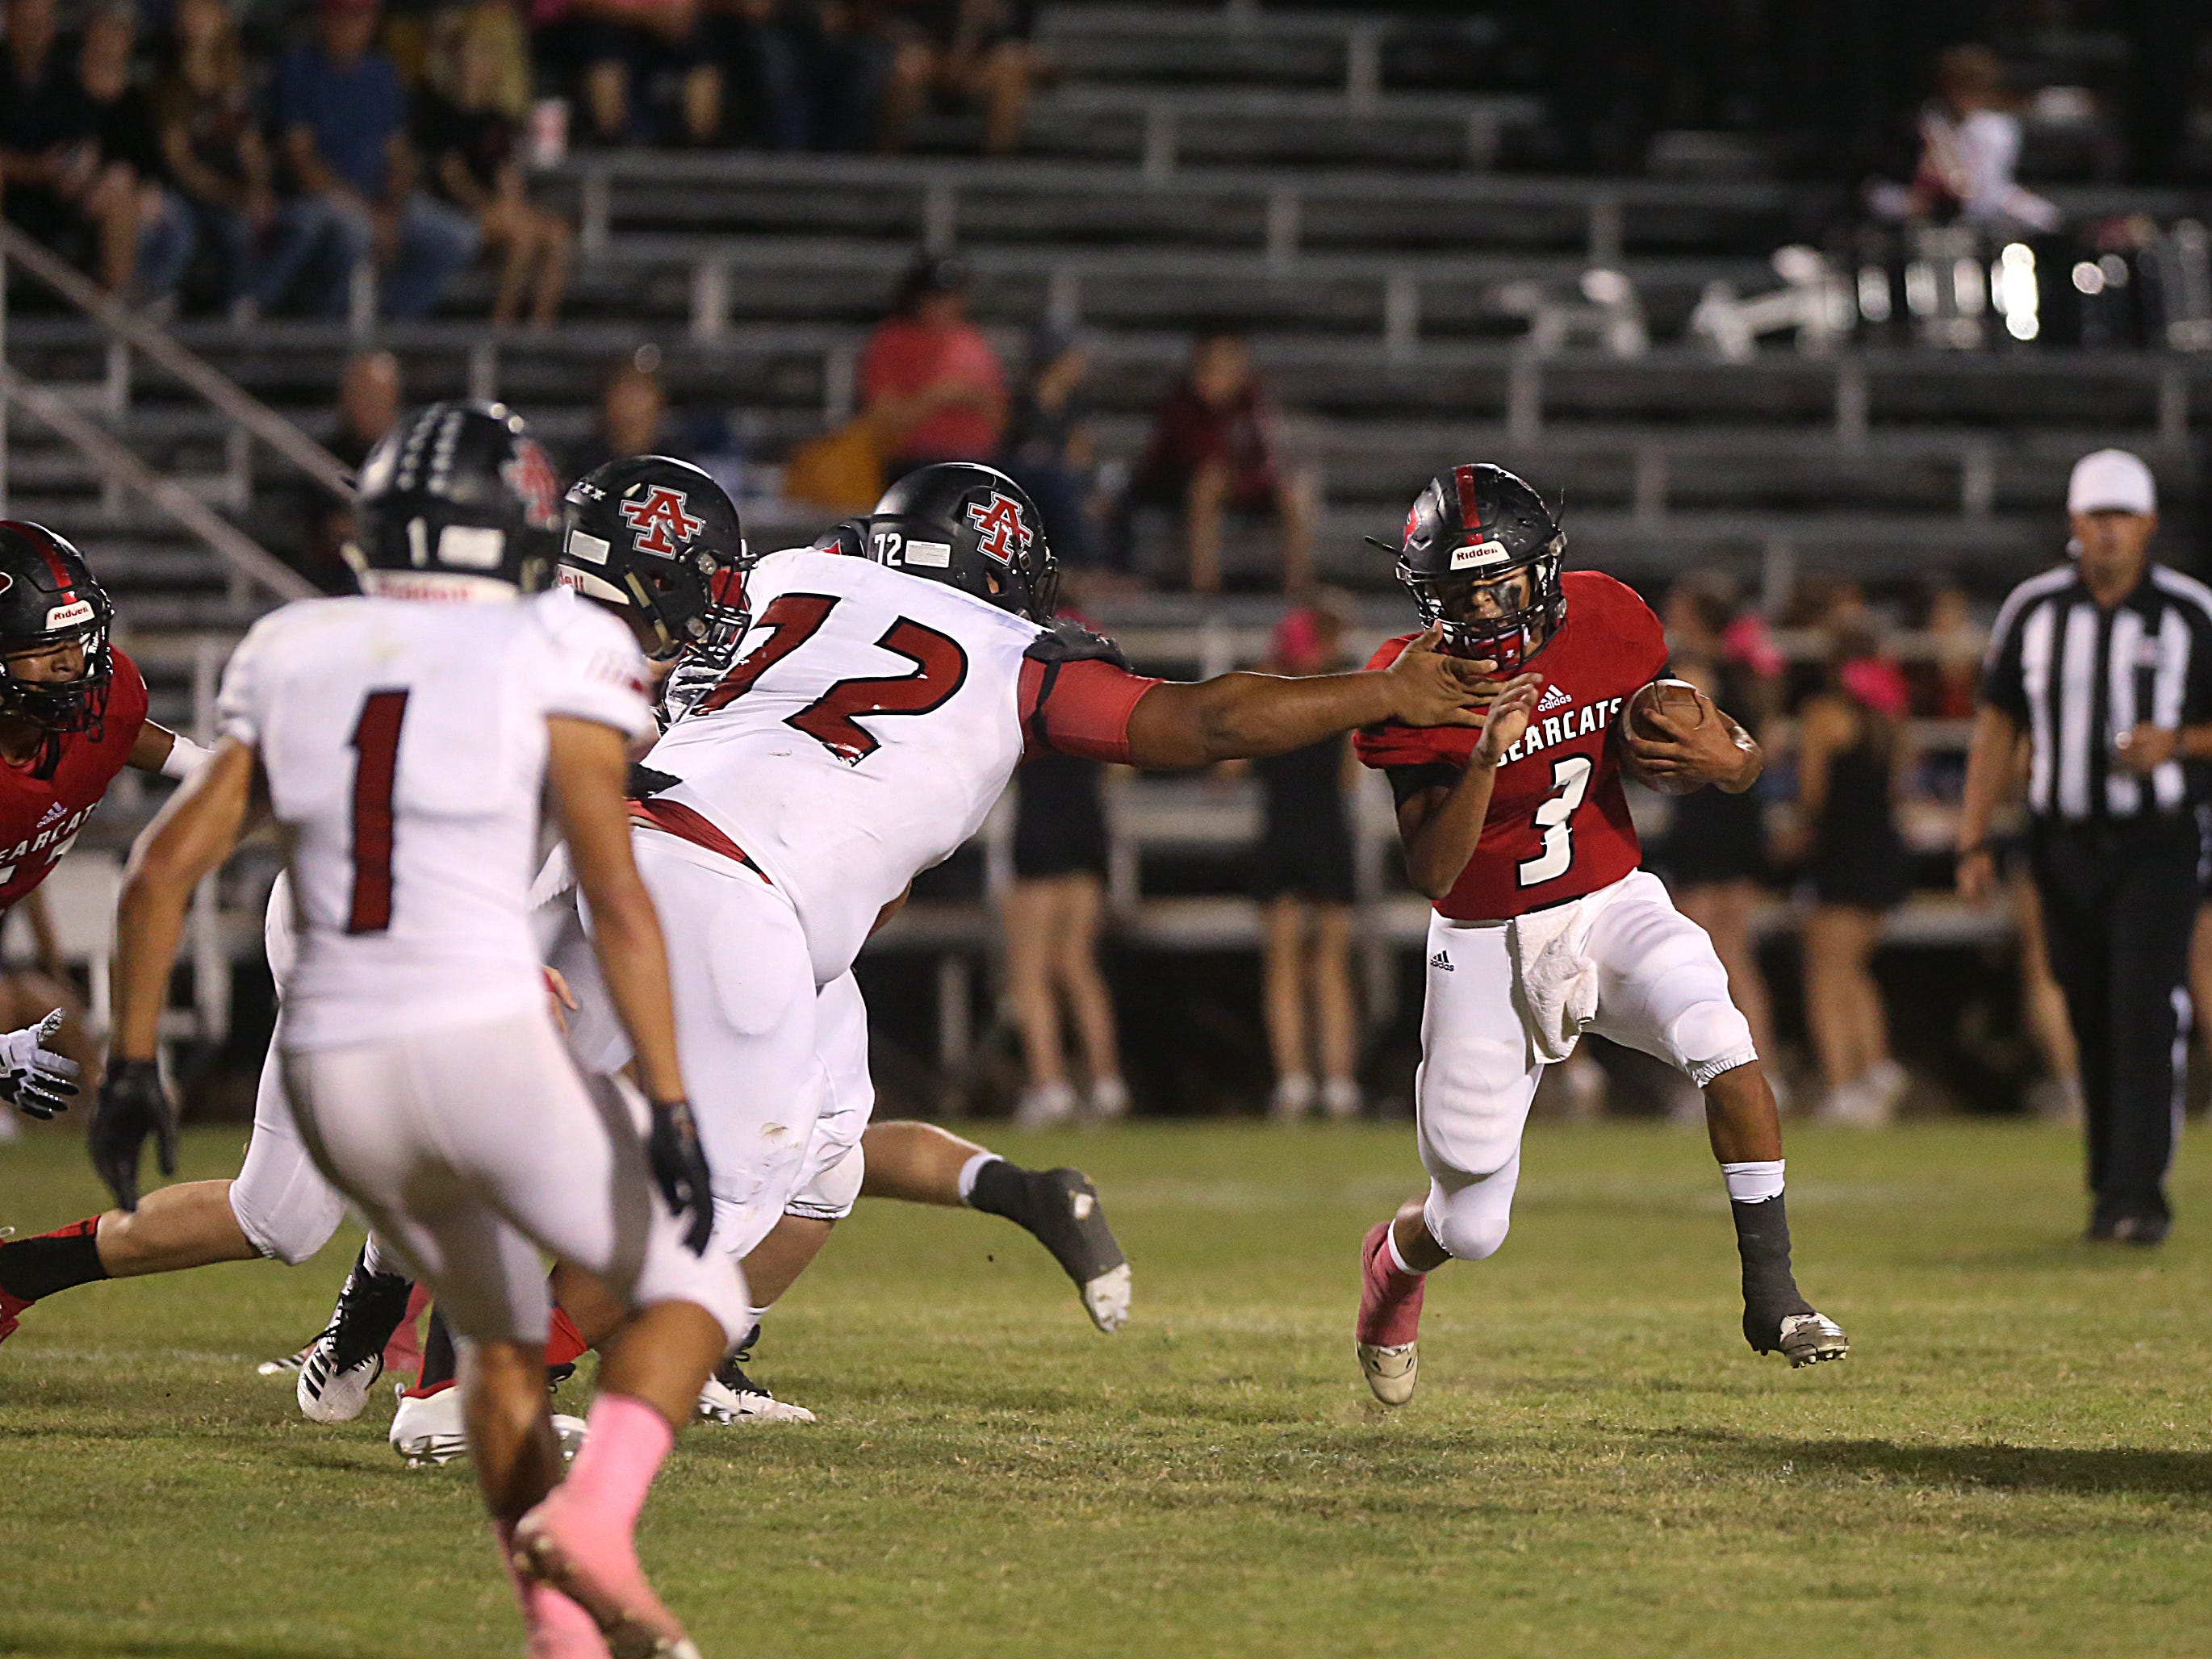 Ballinger's Damian Willborn (#3) dodges the grasp of Anson's Michael Stamper (#72) during the game Friday, Oct. 5, 2018, in Ballinger.